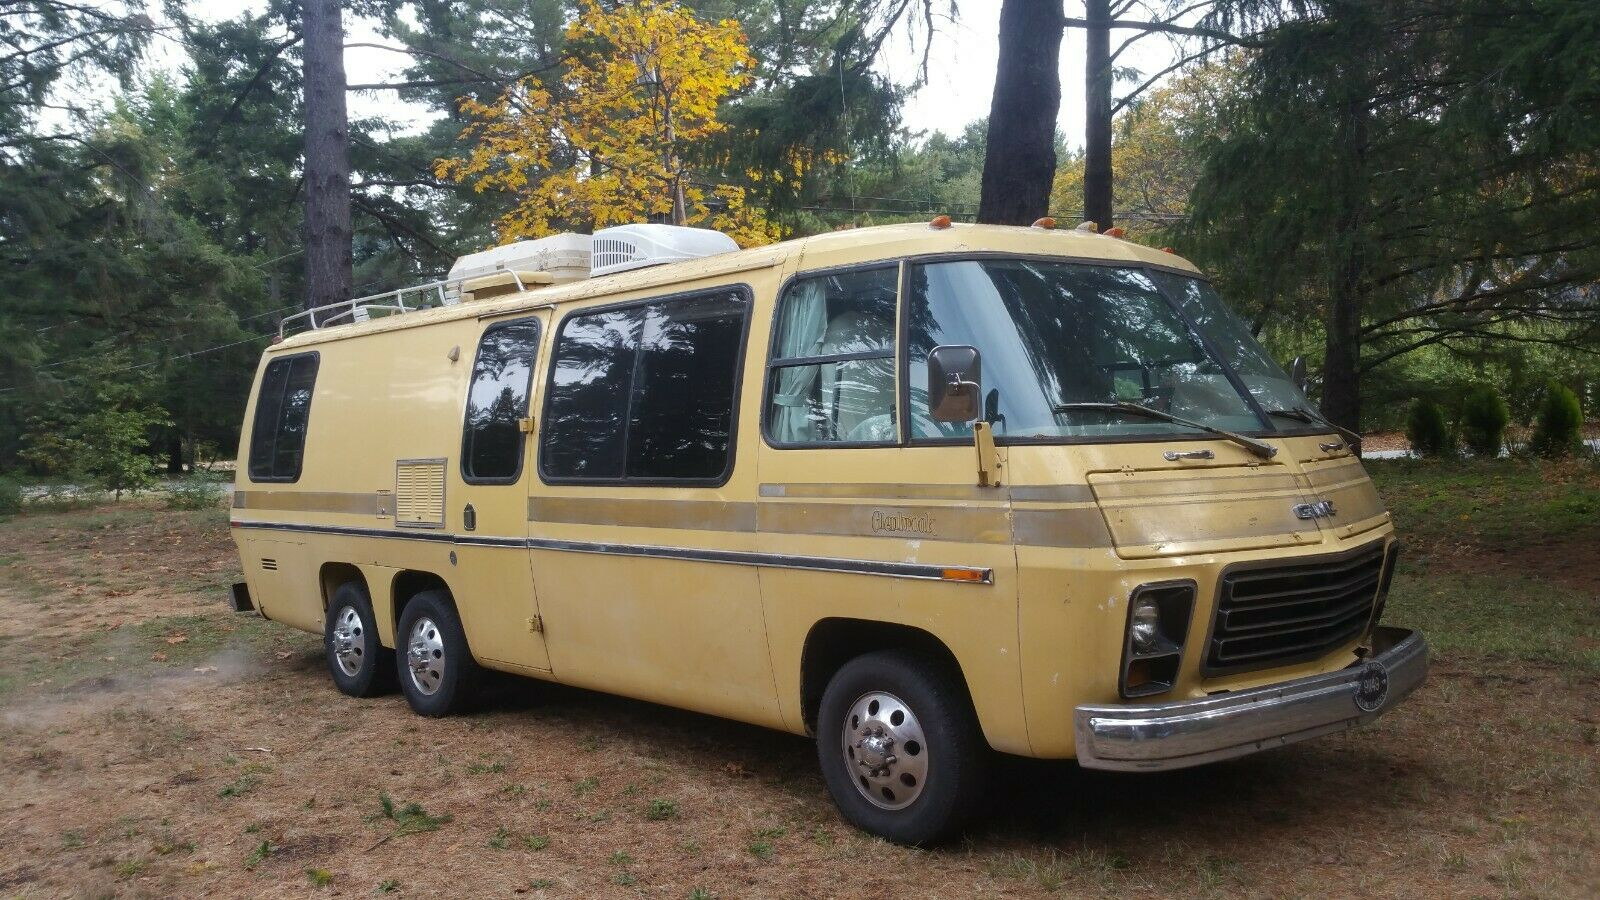 King Of The Road: What Would You Do With This 1976 GMC Motorhome?